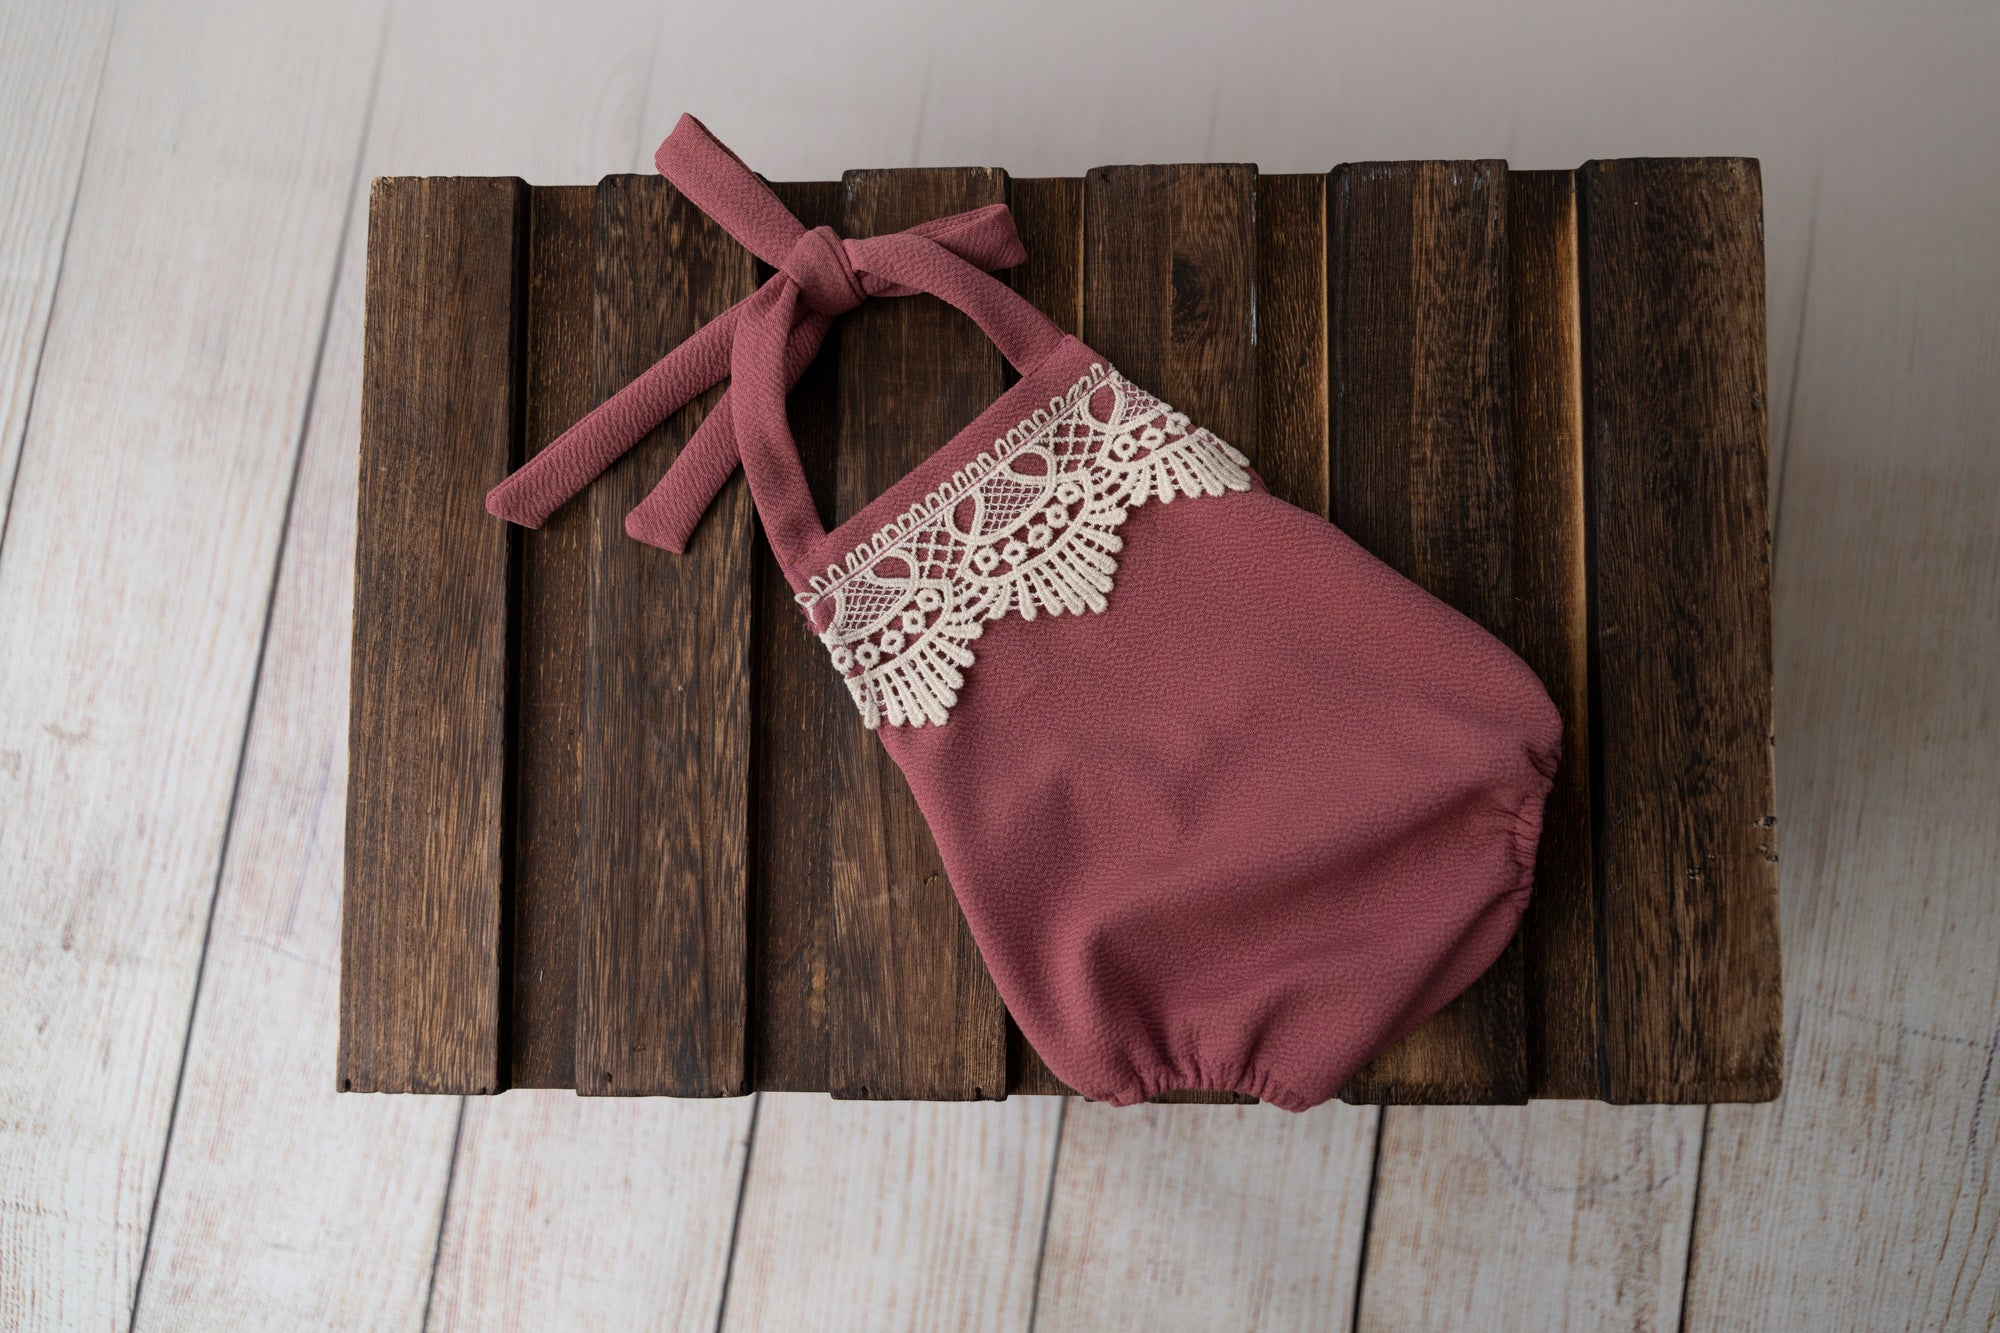 Bohemian Stitch Romper with Lace - Textured - Mauve